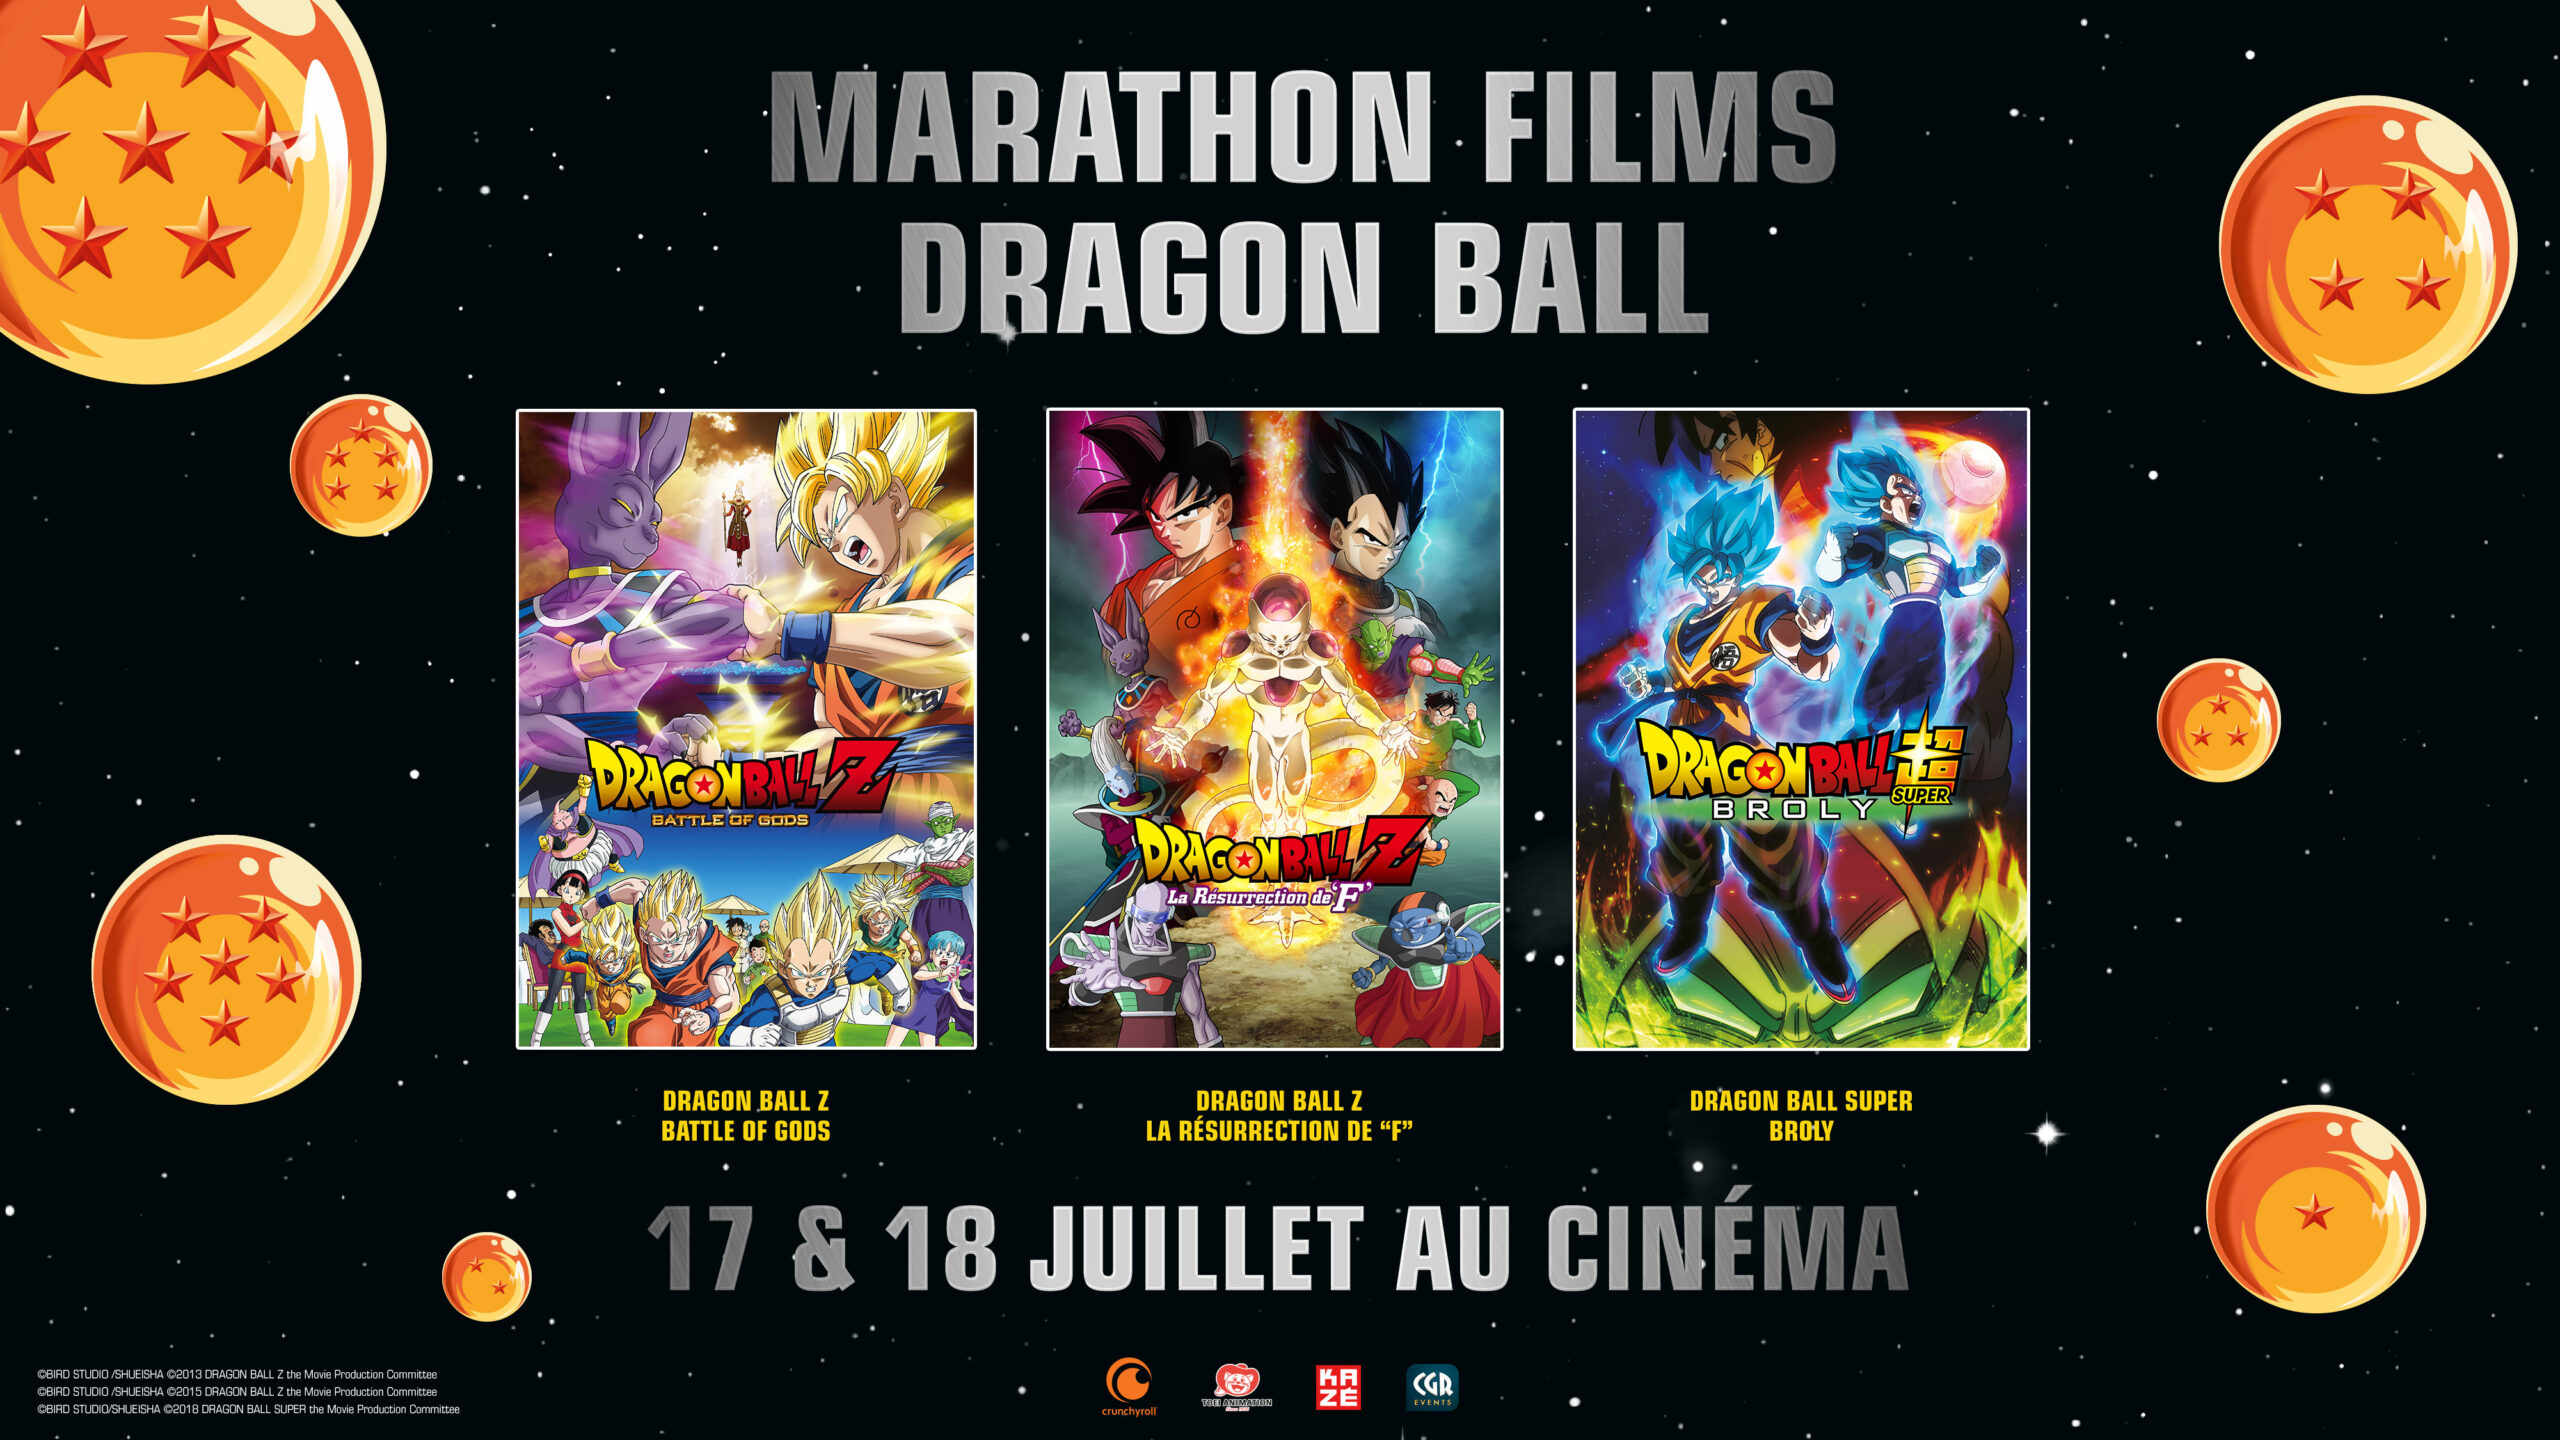 Marathon films dragon ball au cinéma